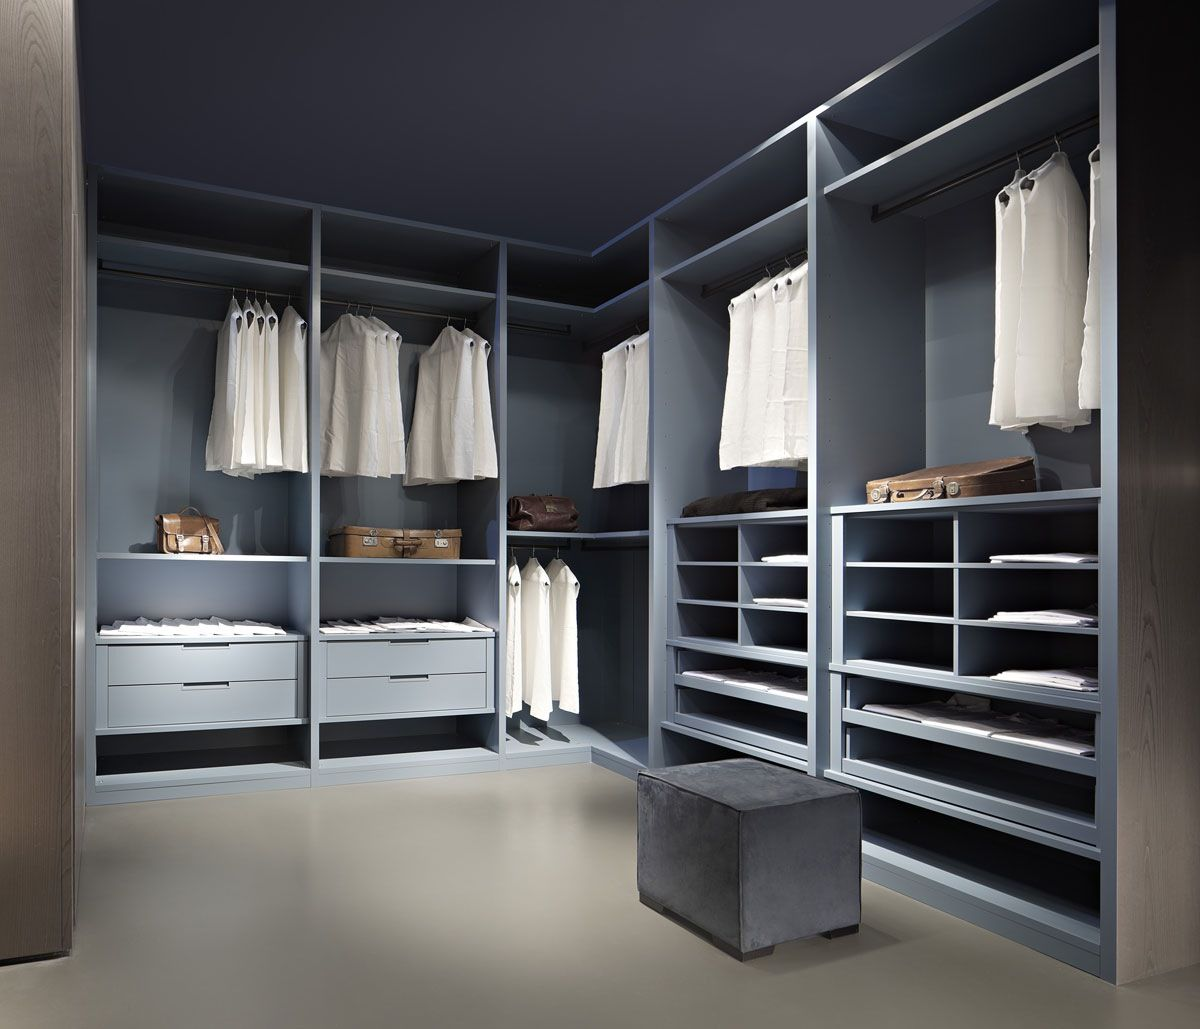 Design Bedroom Closet Images Design Inspiration